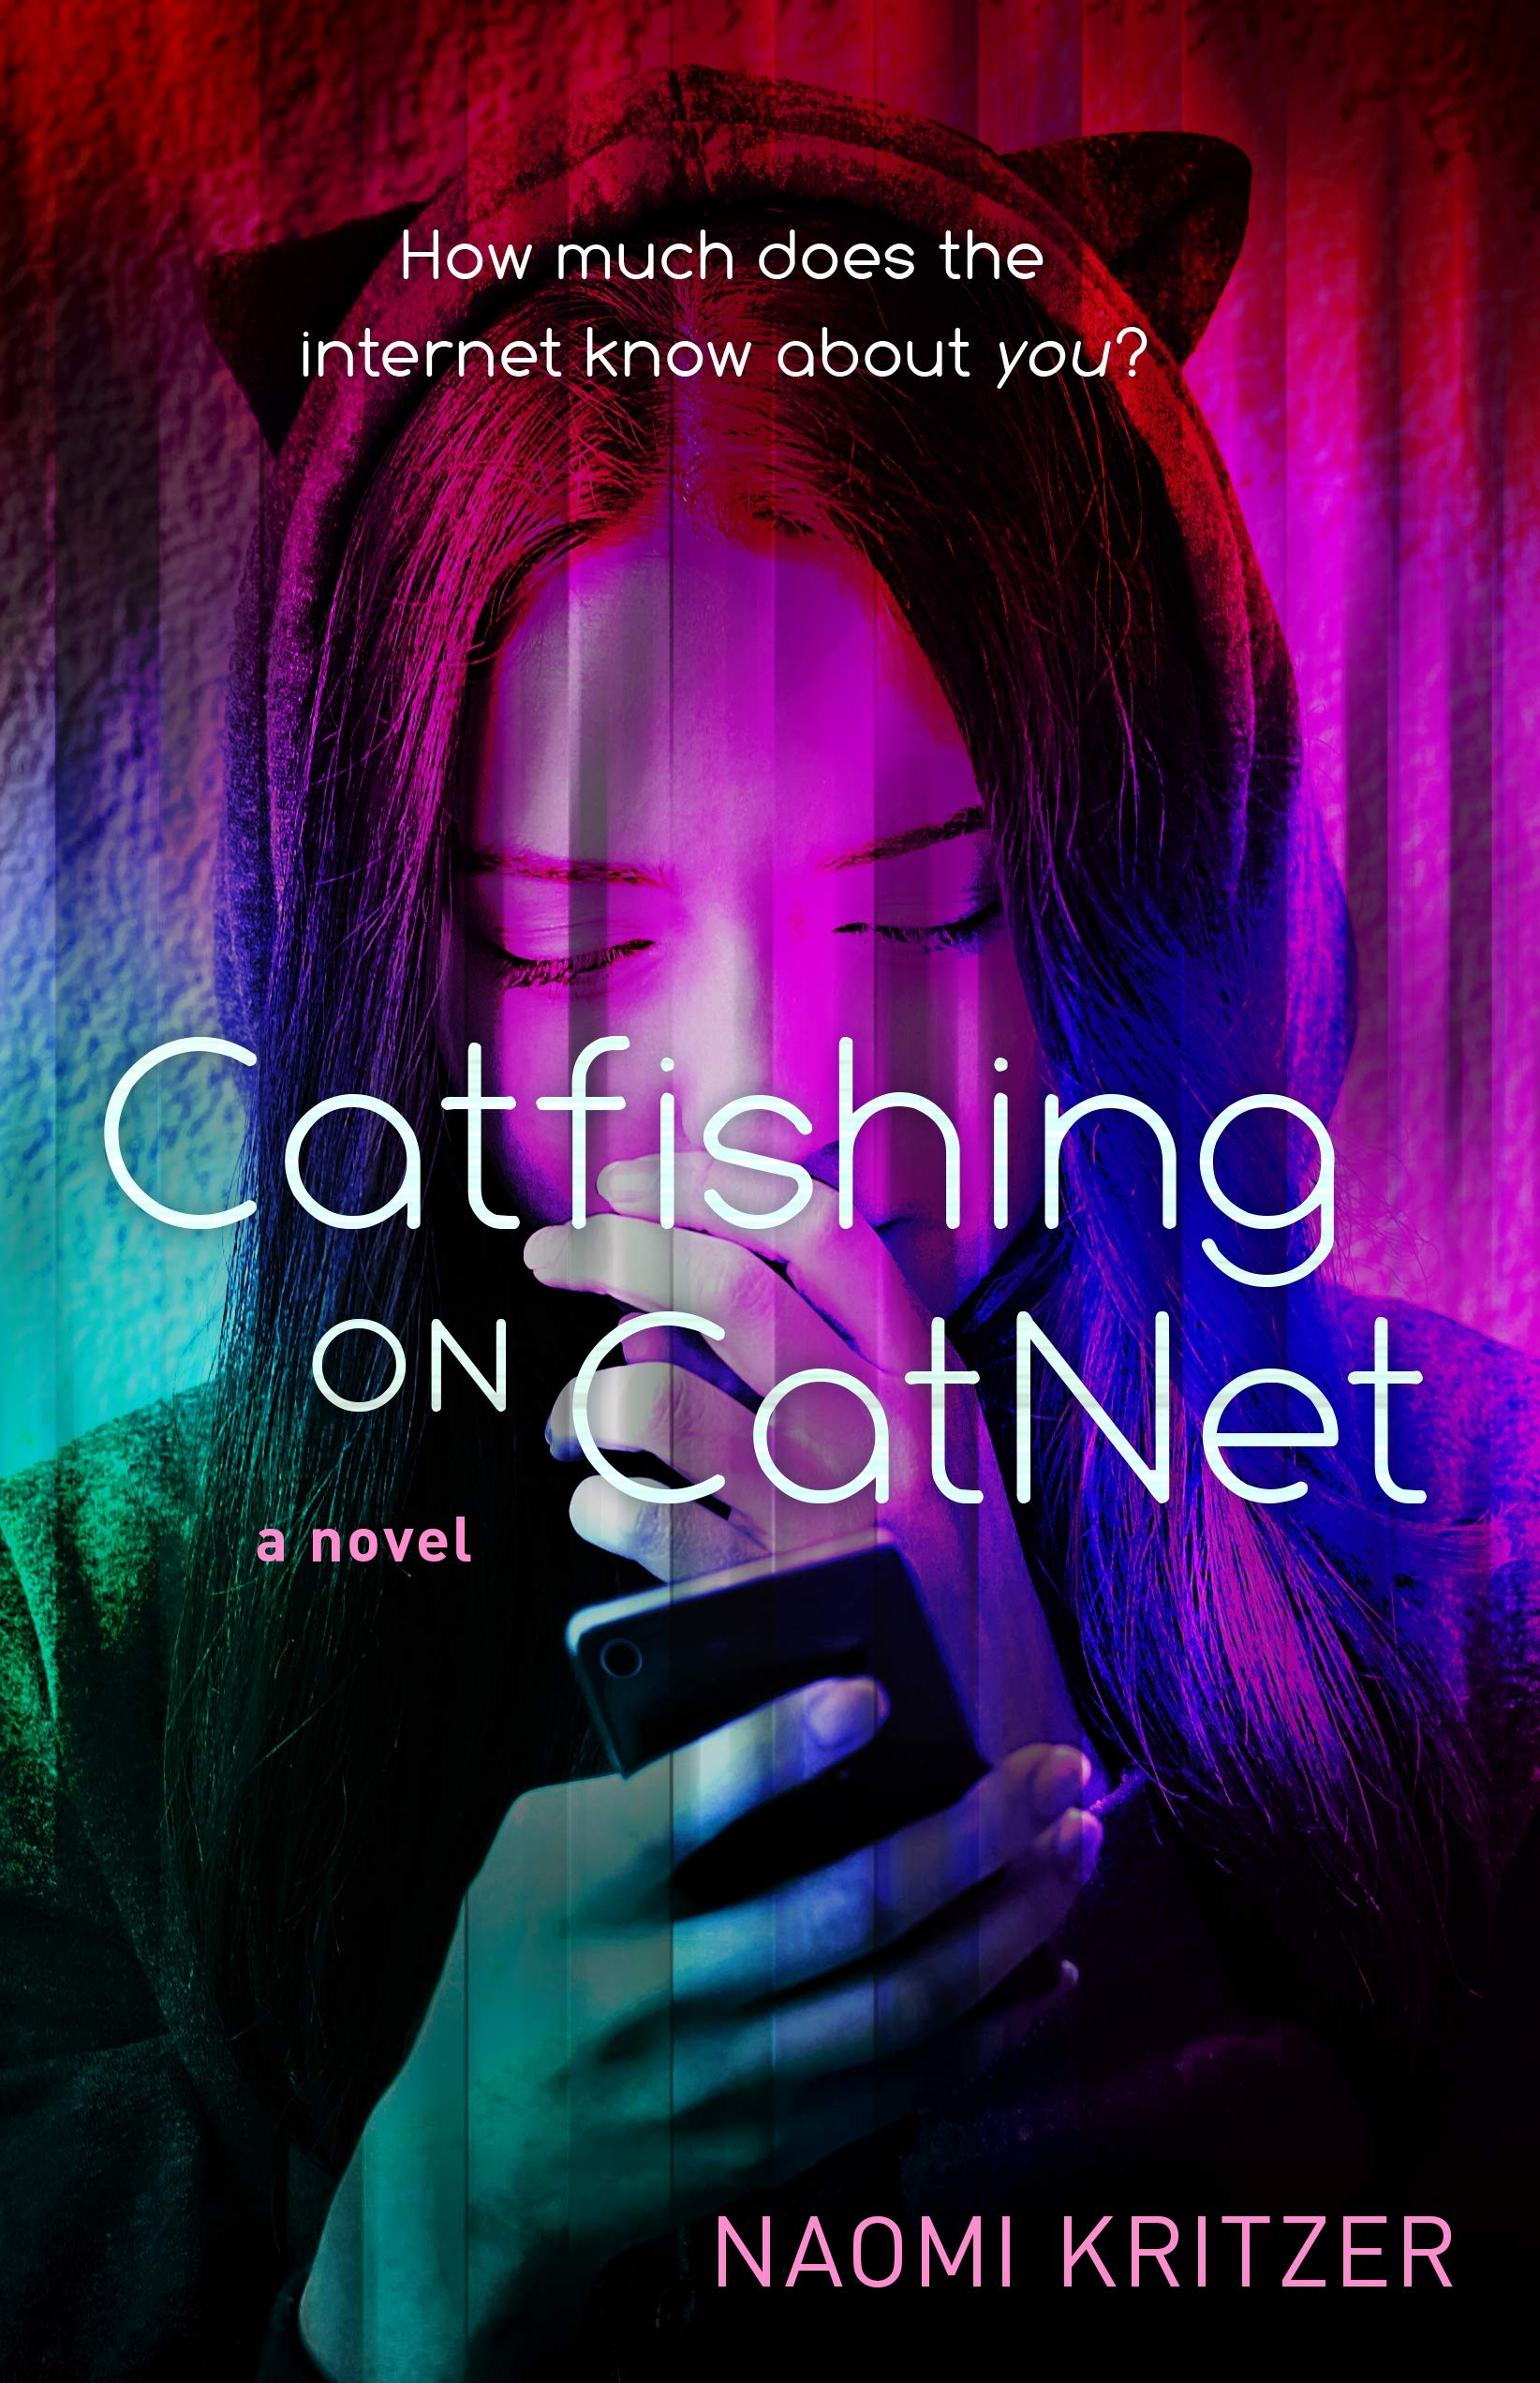 Image result for Catfishing on CatNet: A Novel Naomi Kritzer